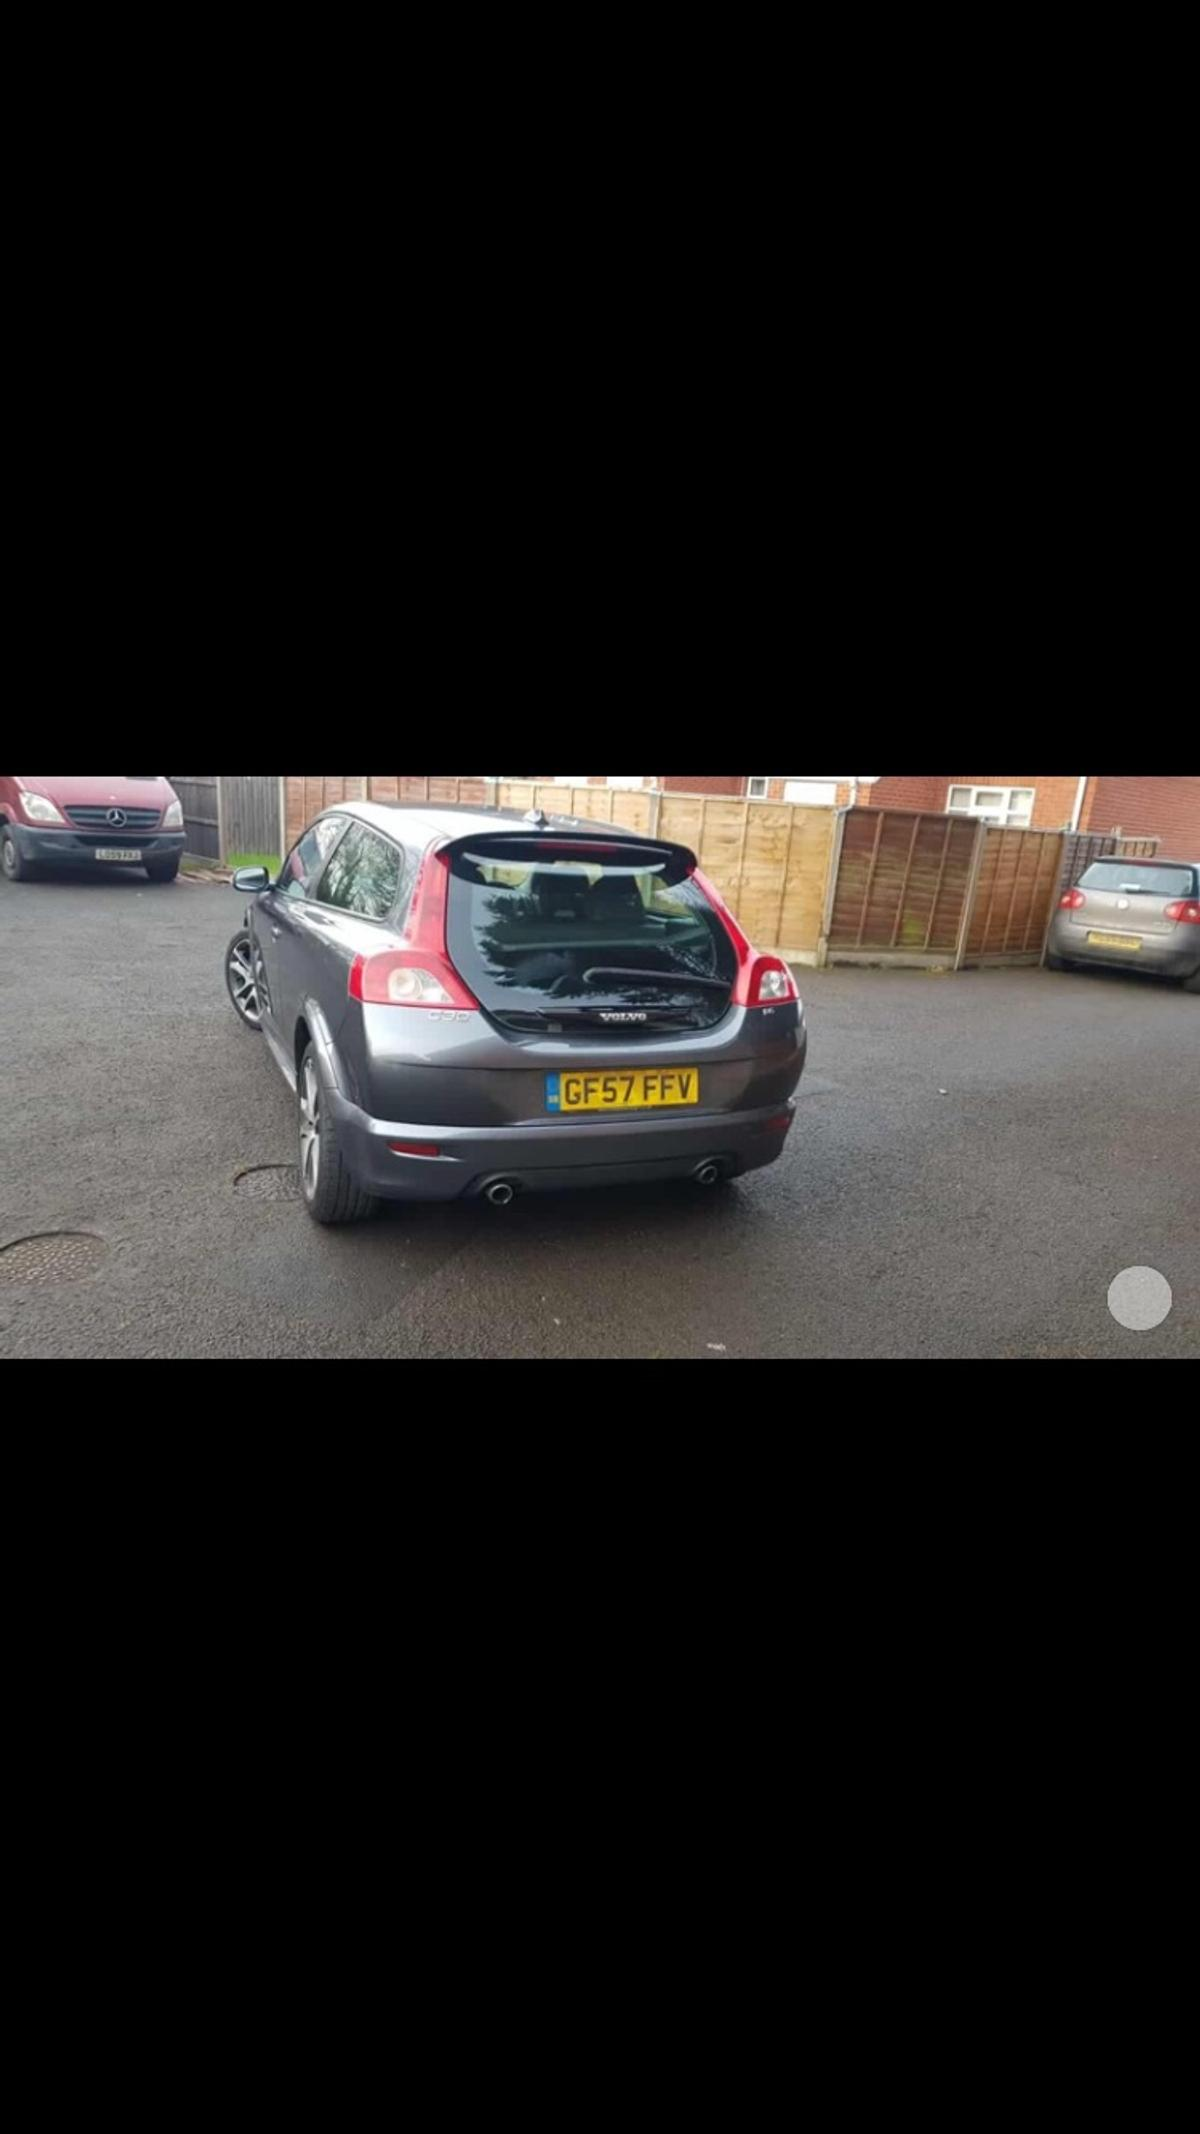 Volvo C30 in B36 Solihull for £650 00 for sale - Shpock